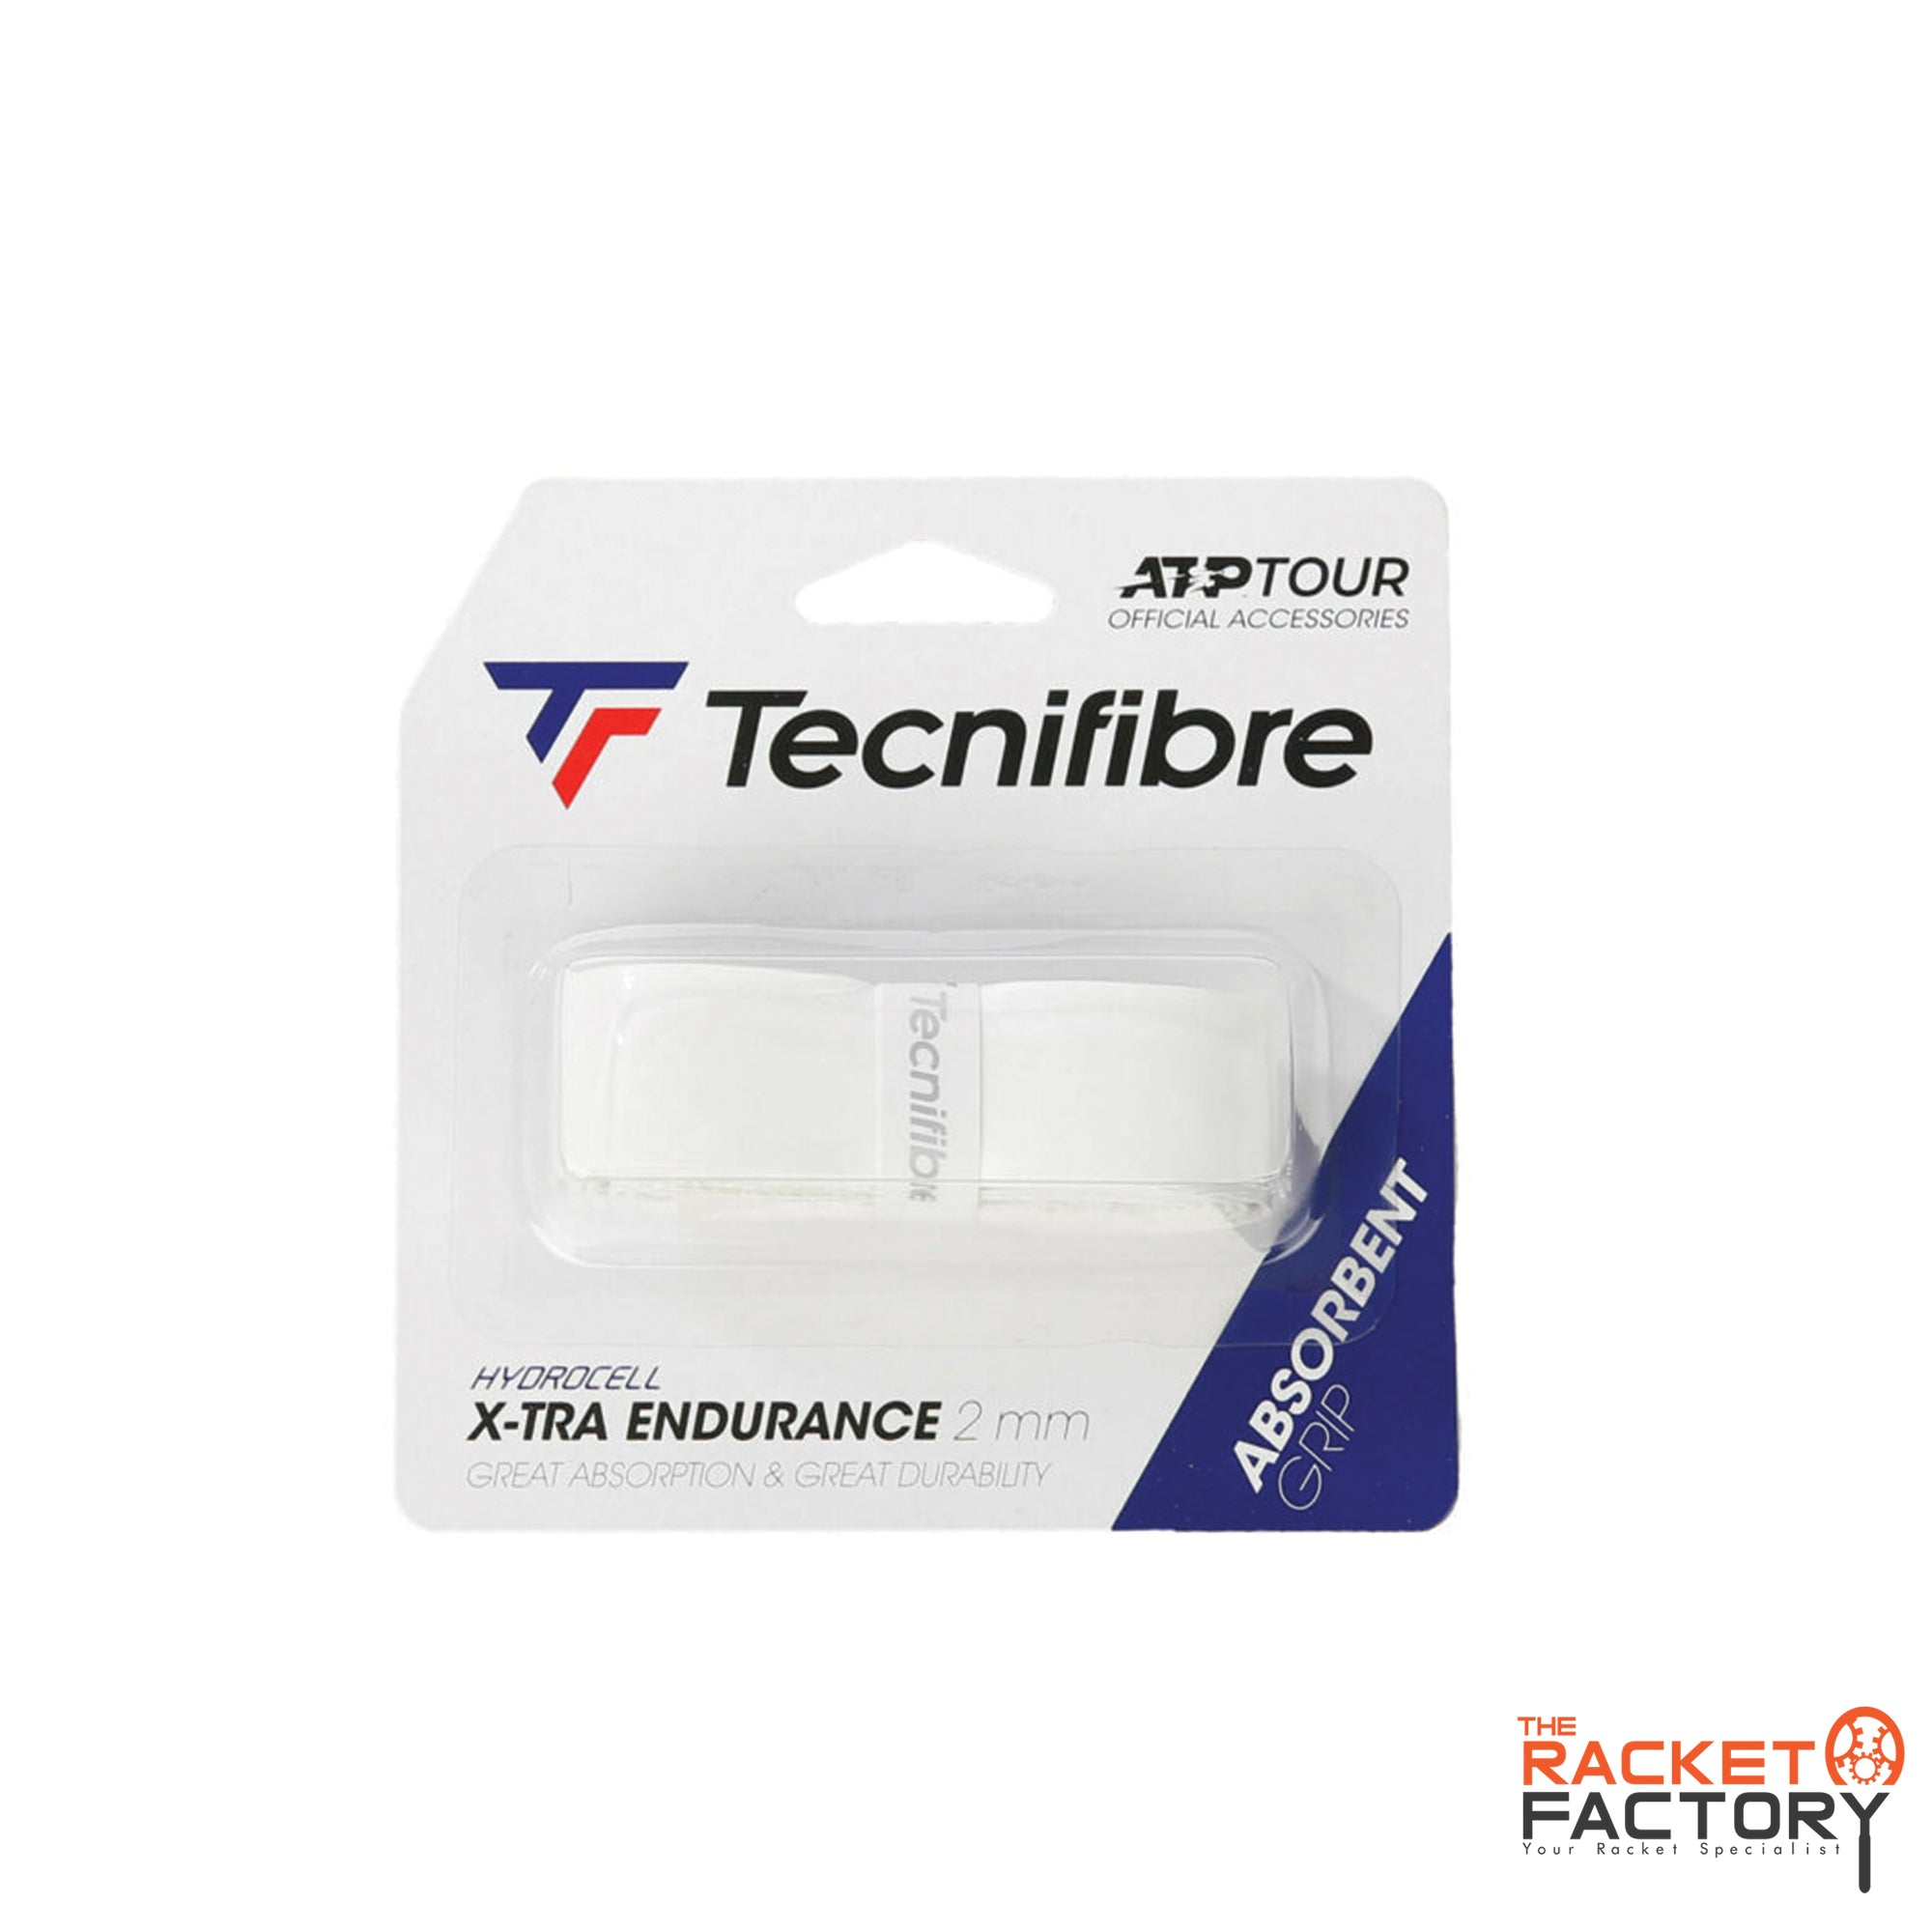 Tecnifibre ATP X-TRA Endurance Replacement Grip - Pack of 1